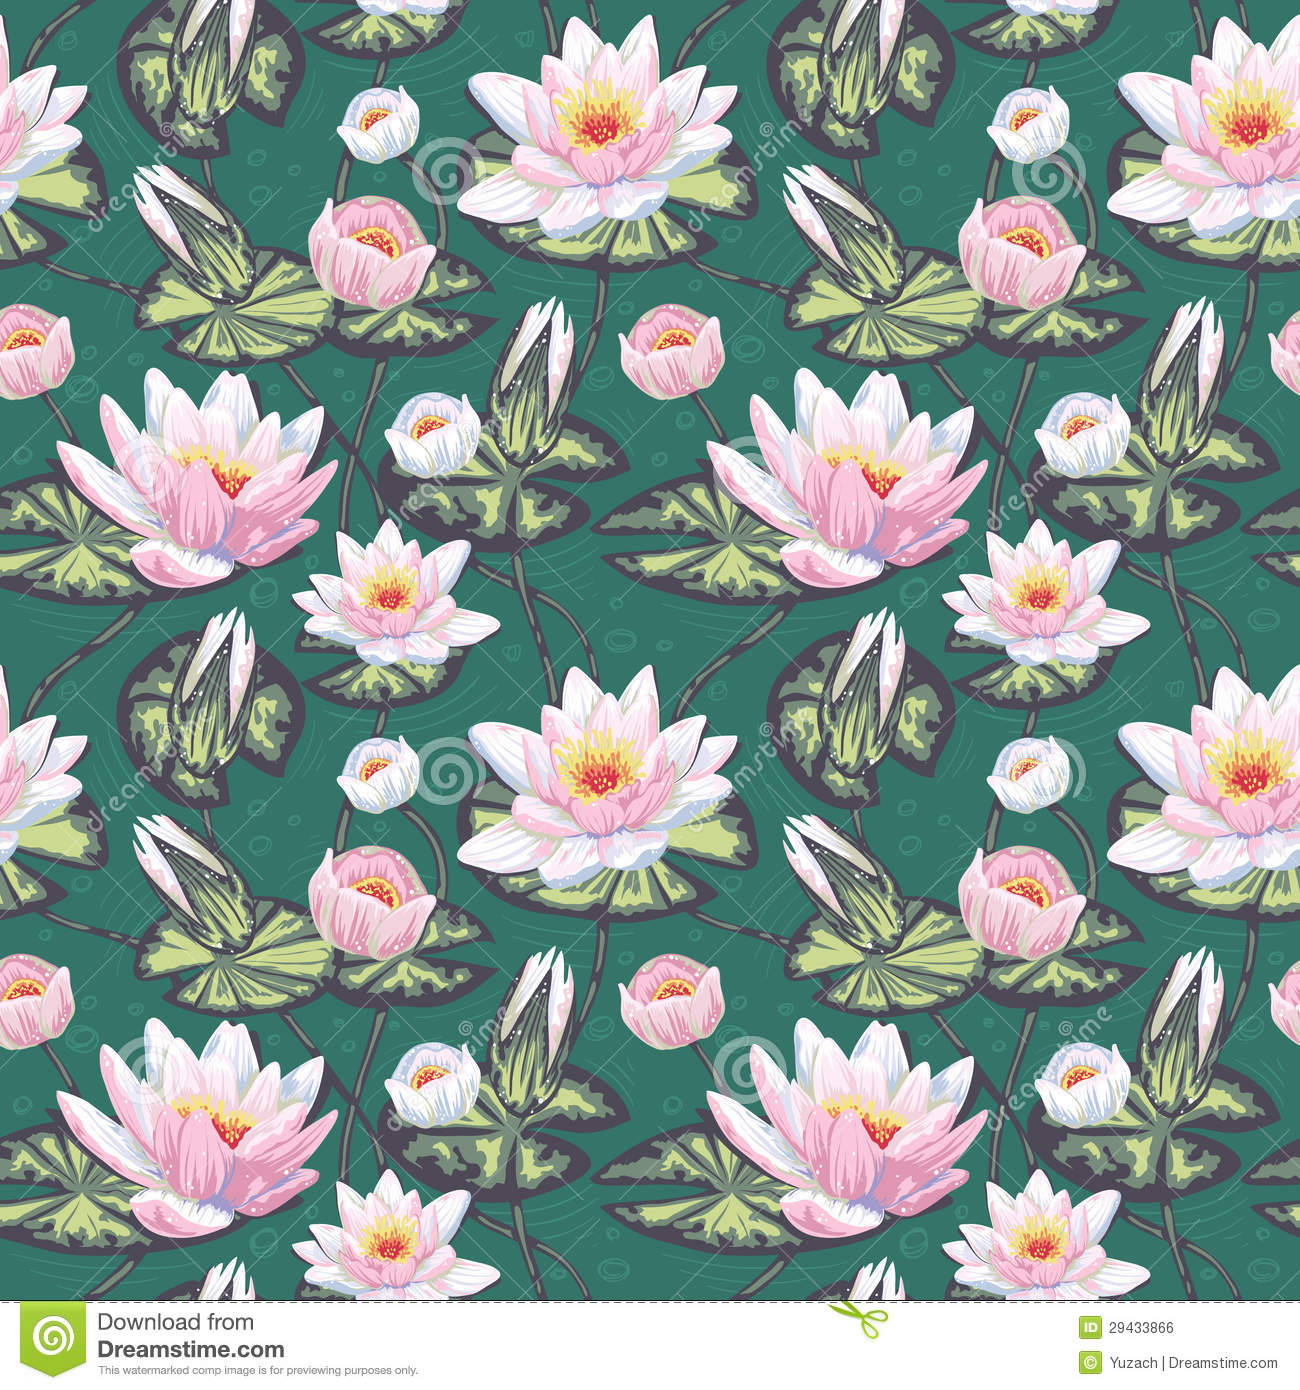 Floral Seamless Pattern With Water Lily Royalty Free Stock Image.